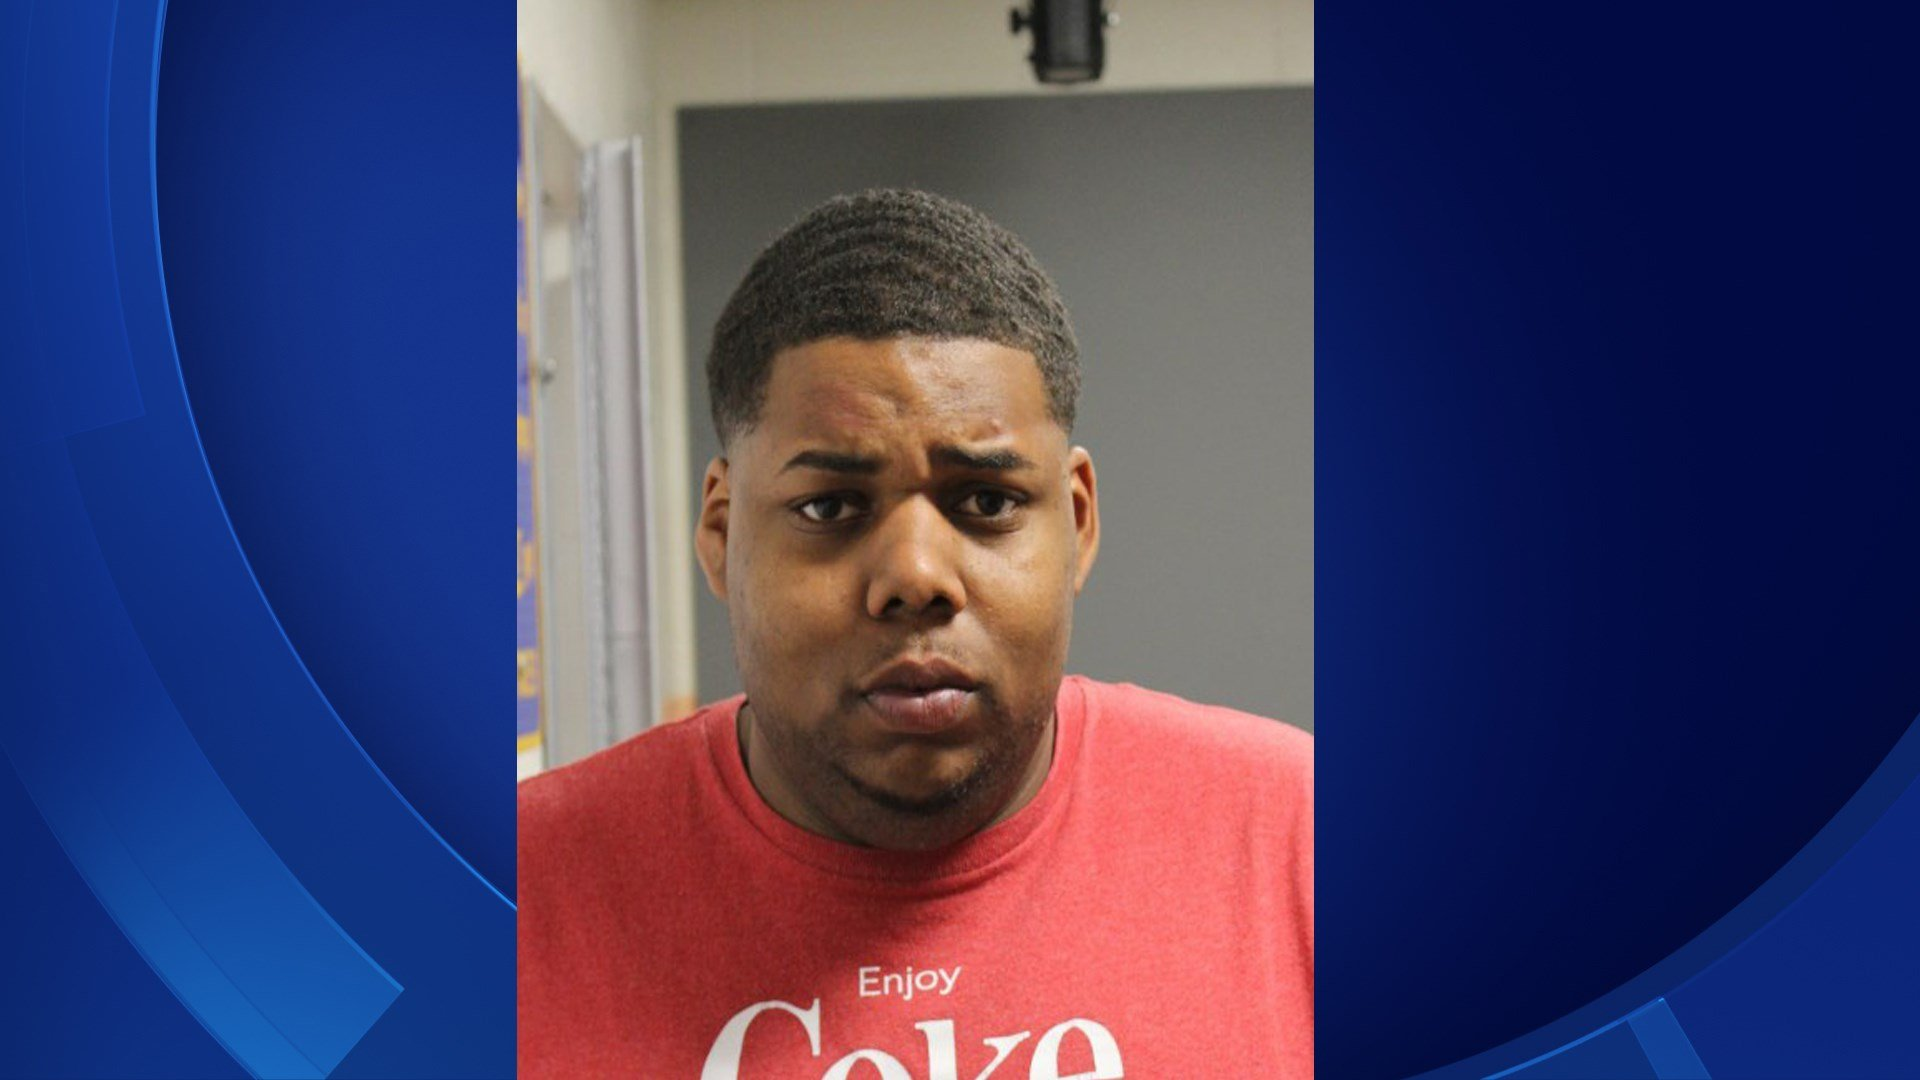 Kenneth Jones was arrested after a police pursuit and breaking into a home to hide (State Police)